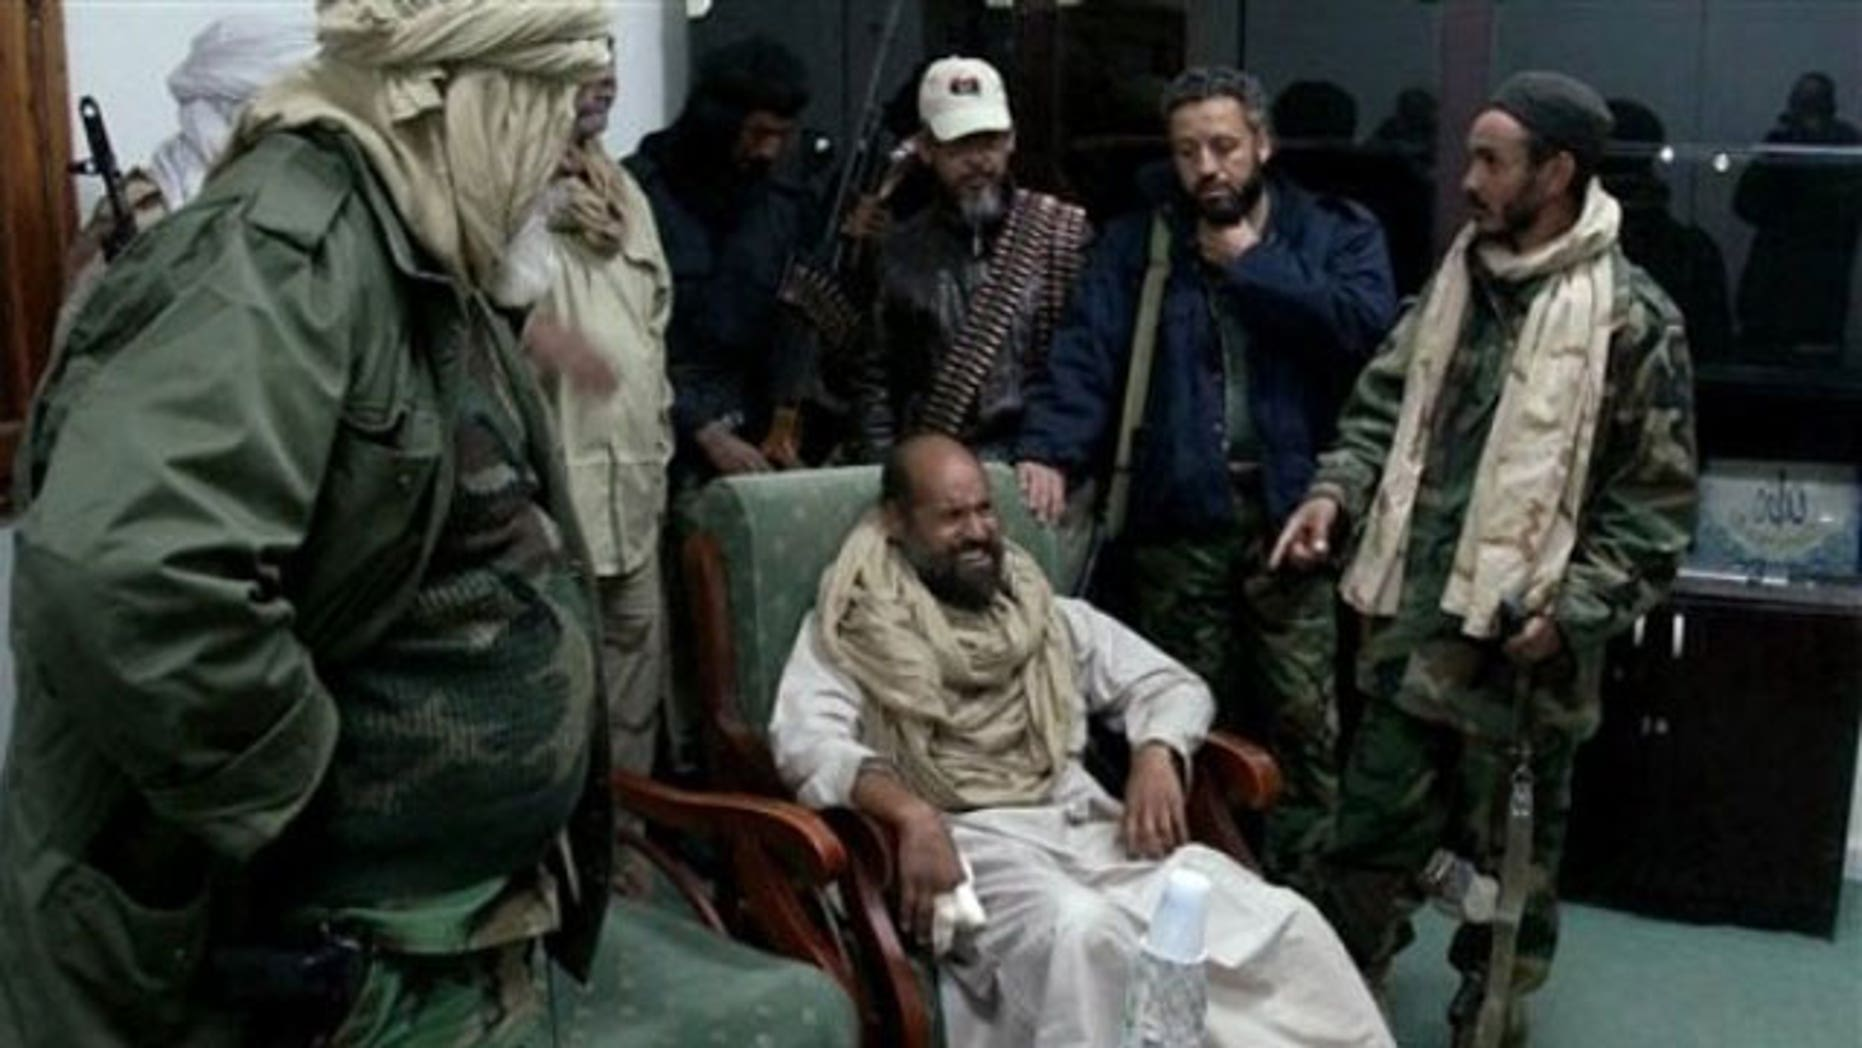 November 22, 2011: In this image taken from new video which has become available showing of Muammar Qaddafi's son Seif al-Islam, sitting at centre, wincing in pain from his injured fingers, in video taken shortly after his capture on Nov. 19, 2011, at a safe house in the town of Zintan, Libya.